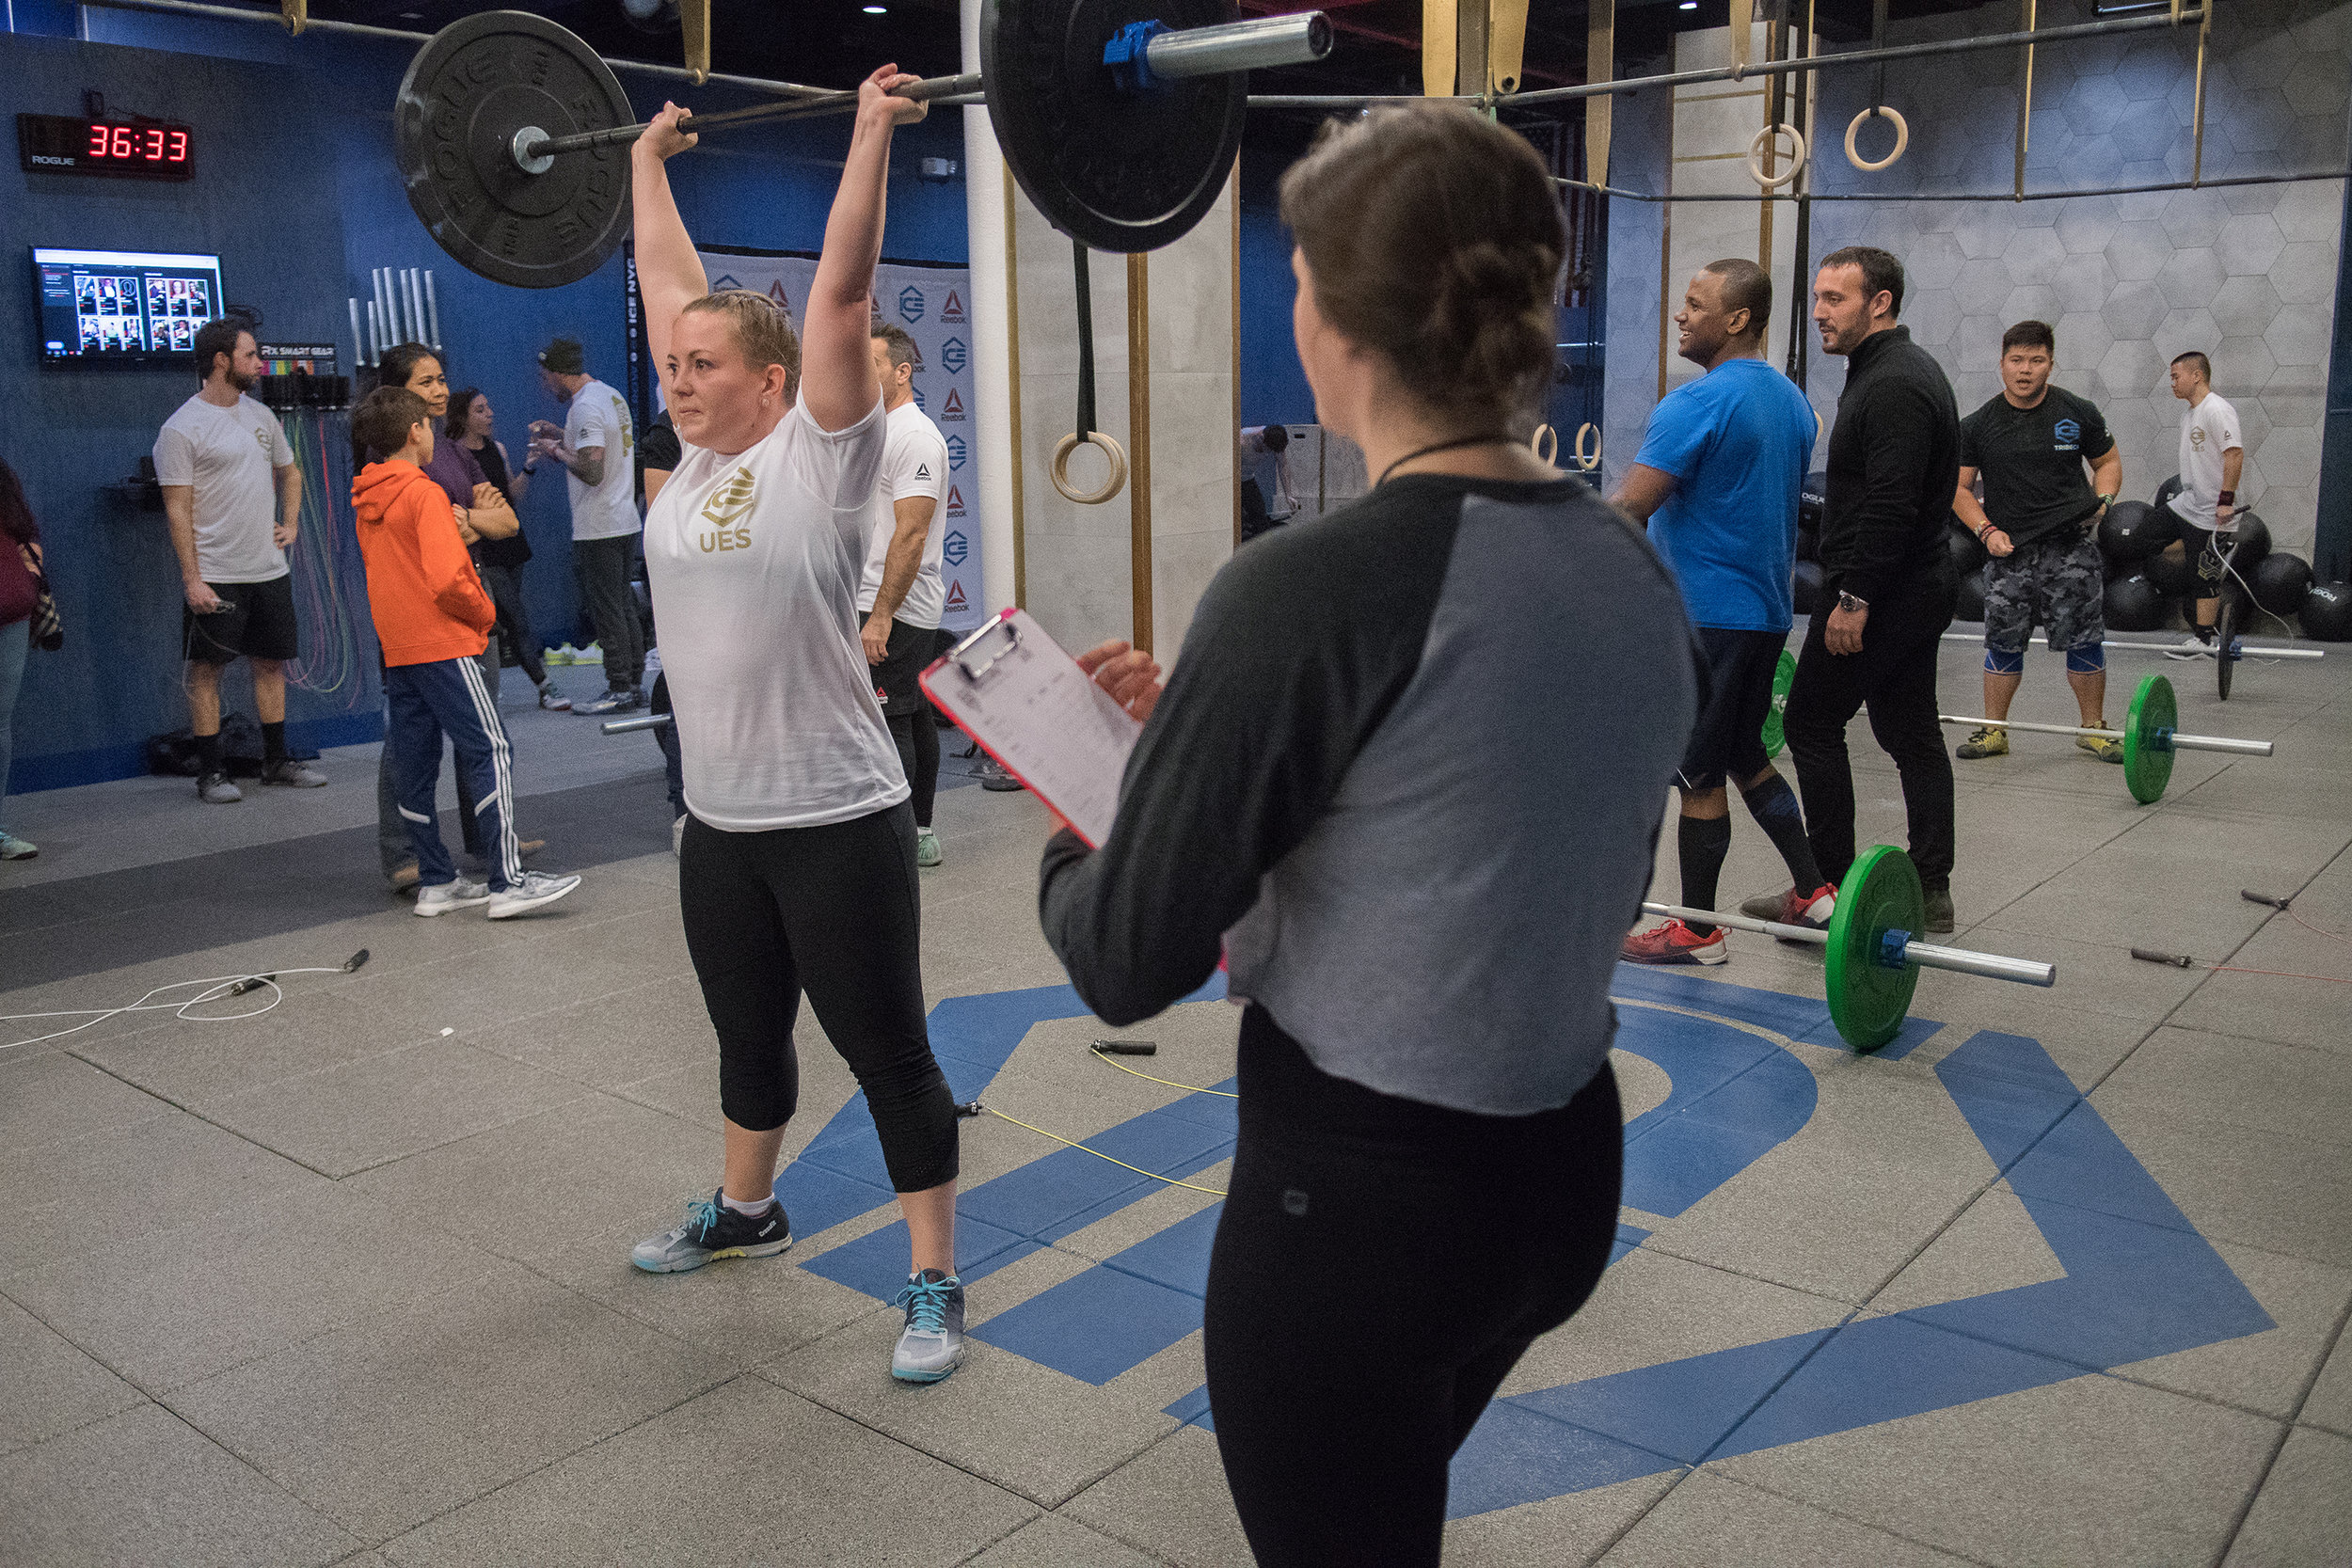 ICE NYC CrossFit Open 17.5 @martsromero - Quick Selects 009 20170324.jpg